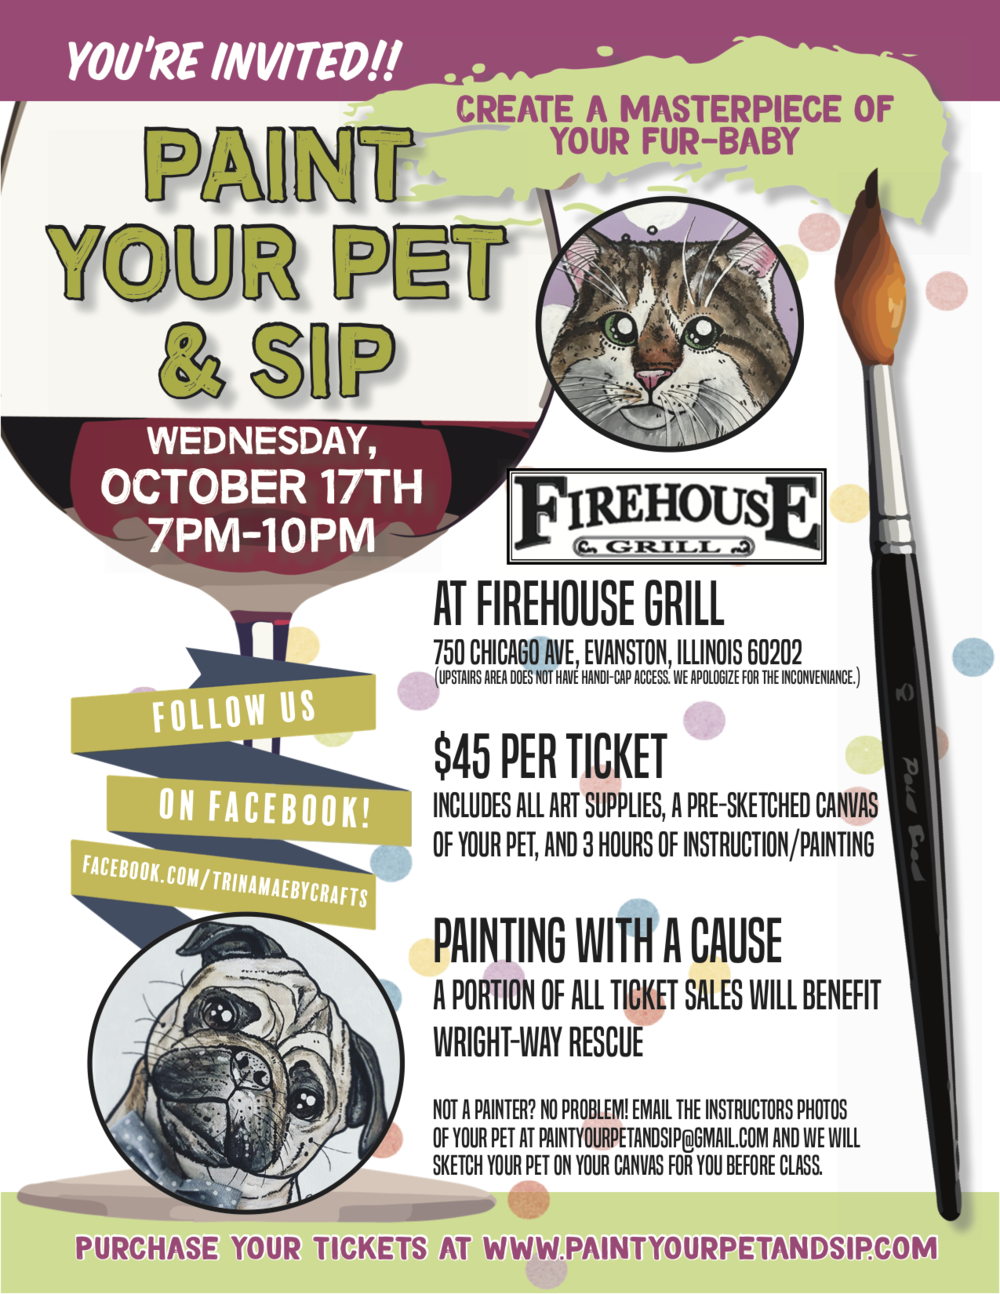 PaintyourpetFlyer_wrightwayrescue_Firehouse.png